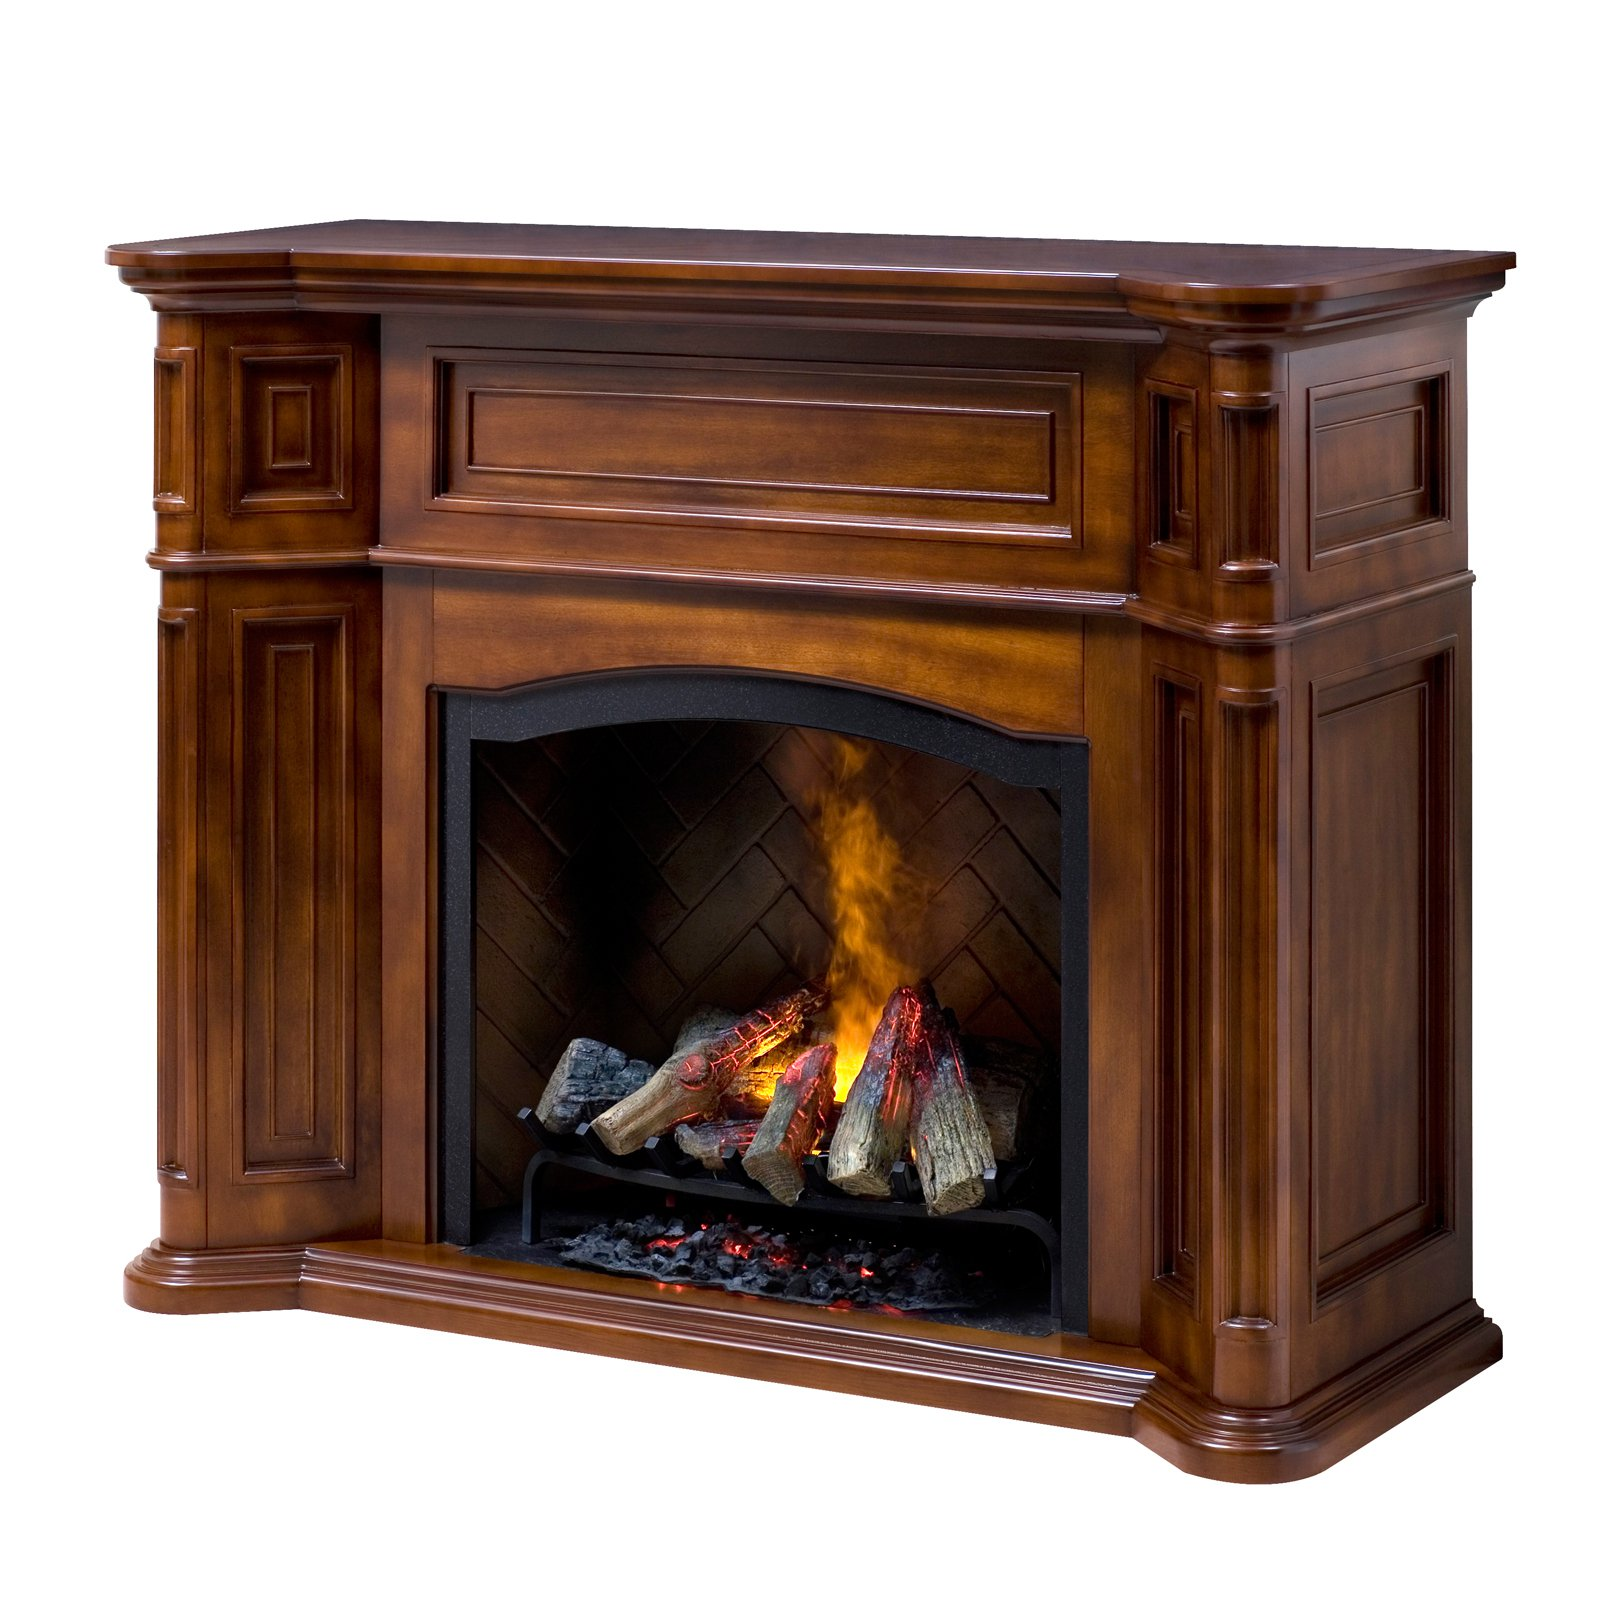 Dimplex OptiMyst II Thompson Electric Fireplace by Dimplex